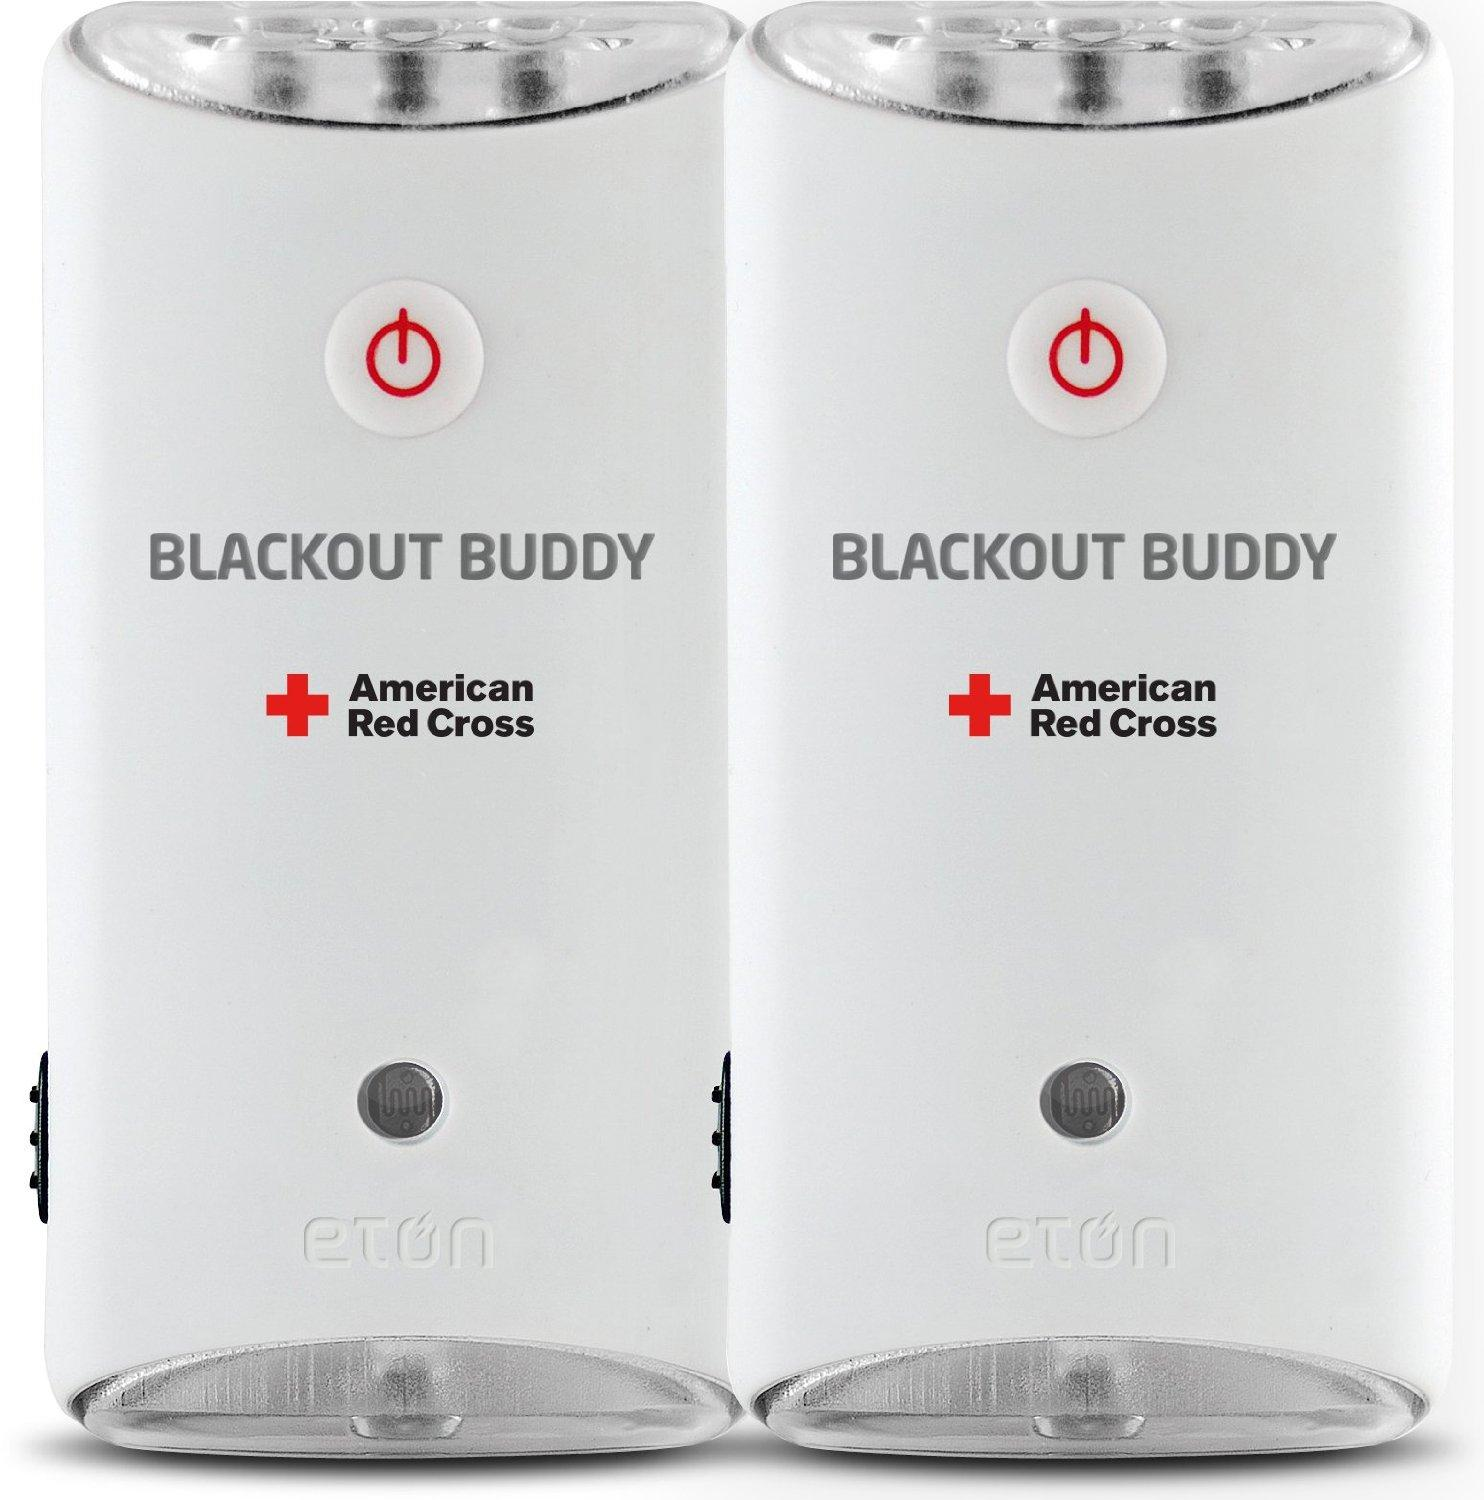 The American Red Cross Blackout Buddy the emergency LED flashlight